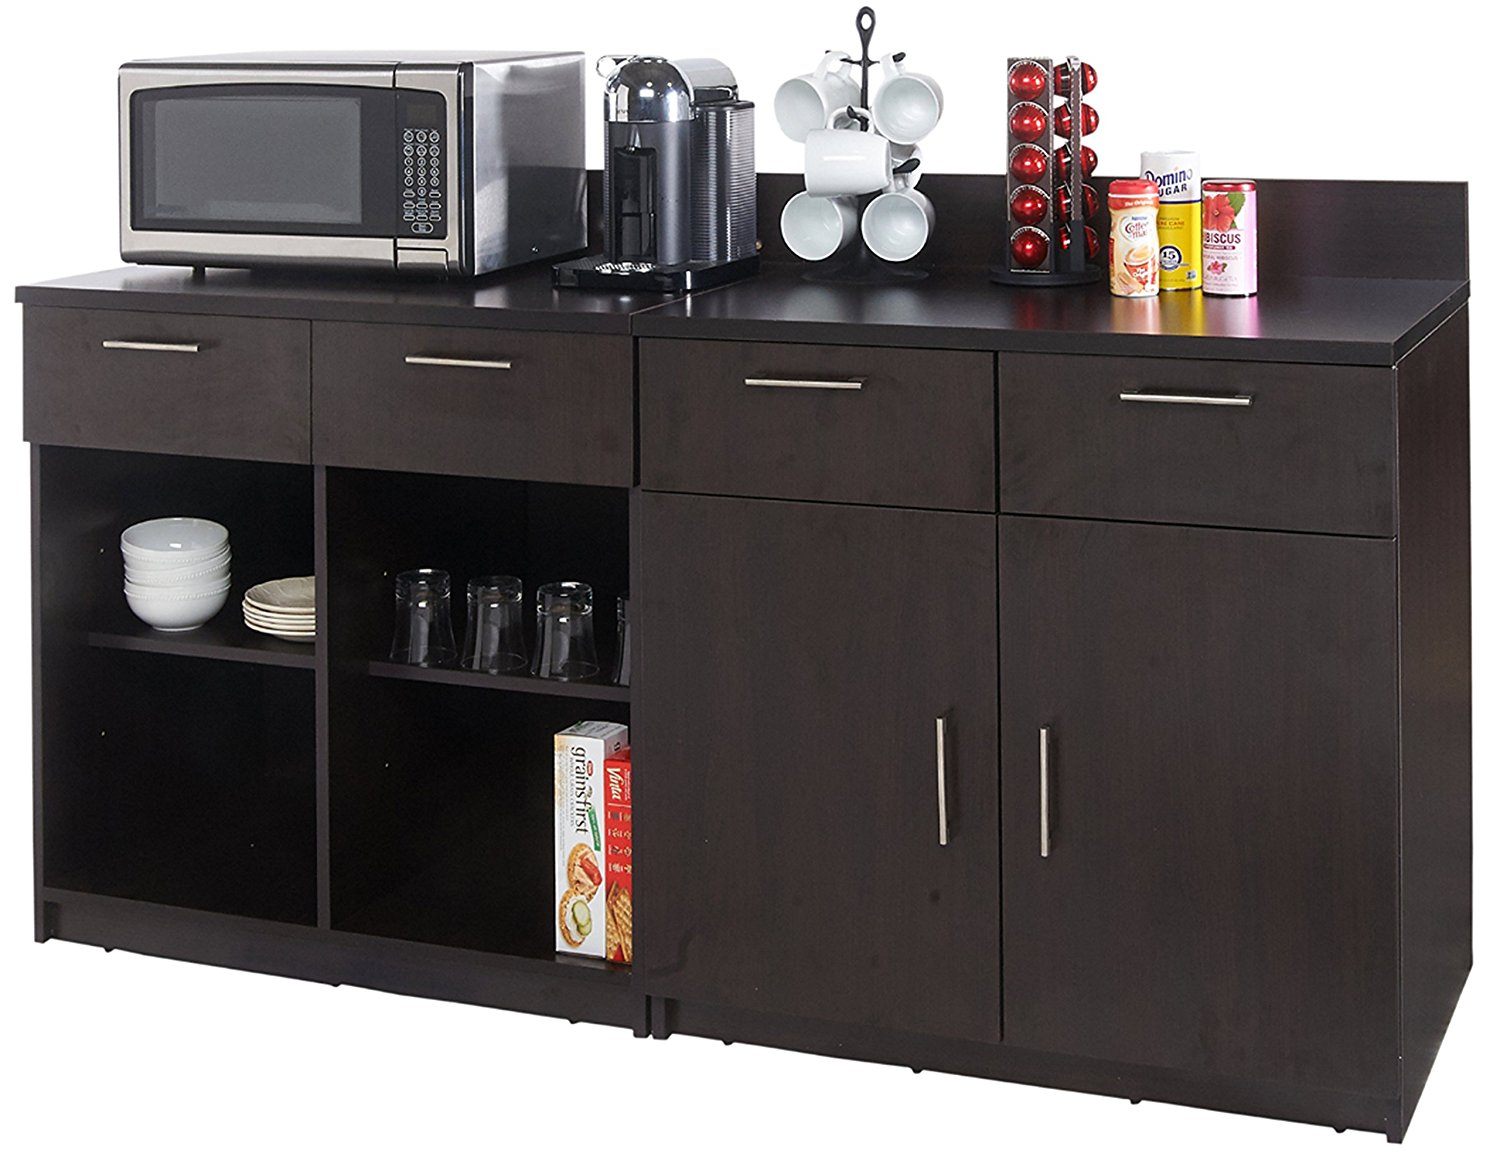 Coffee Kitchen Lunch Break Room Cabinets Model 4210 BREAKTIME 2 piece group Color Espresso - Factory Assembled (NOT RTA) Furniture Items ONLY.